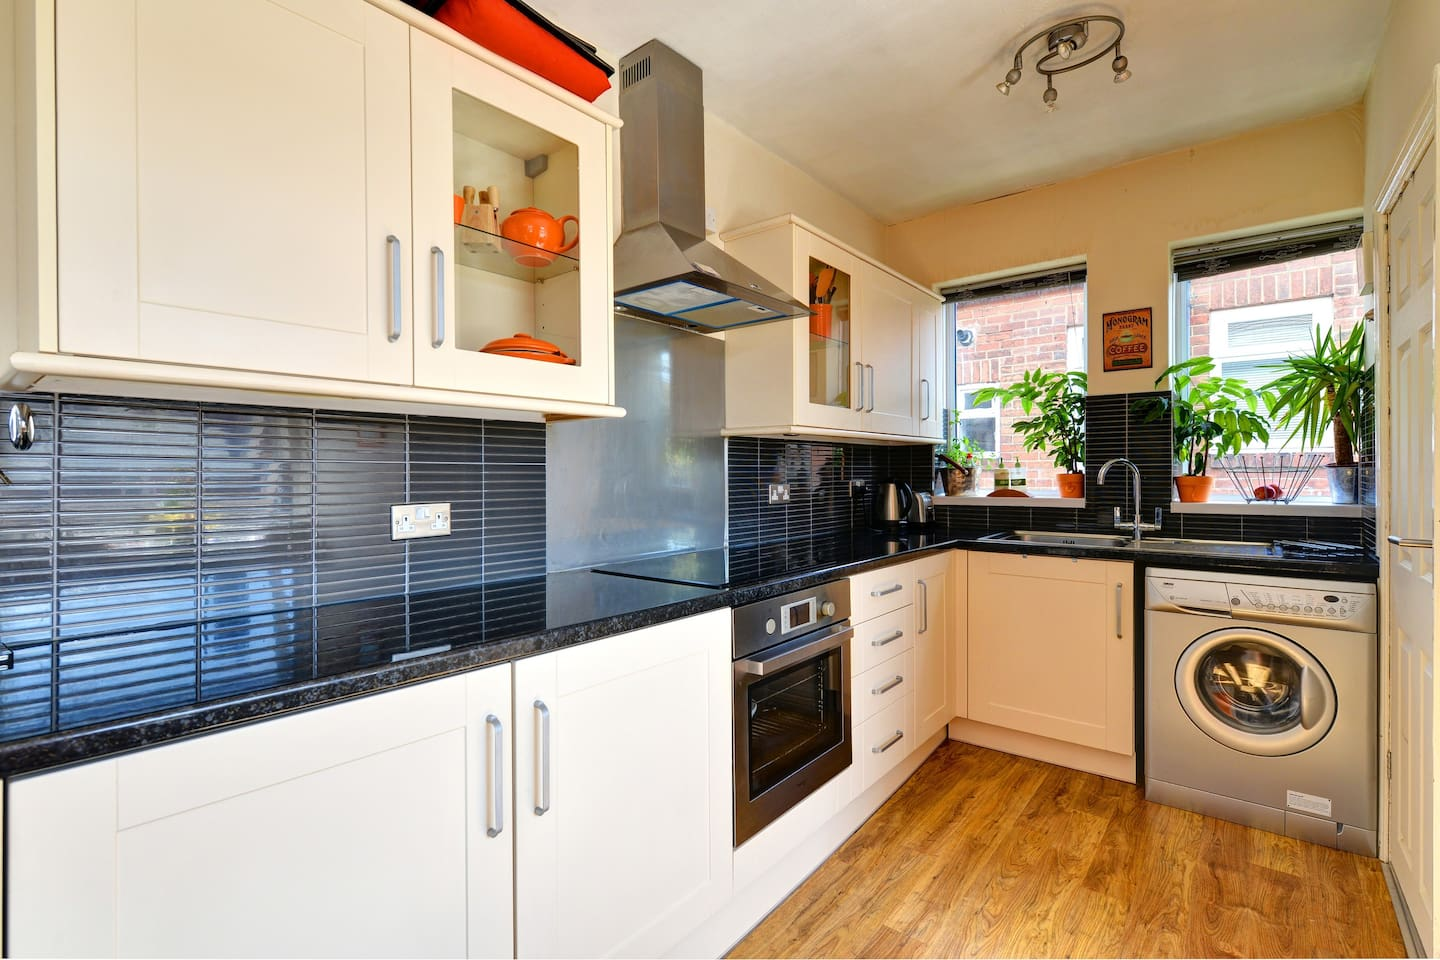 Kitchen are for you to use, oven, grill, hob, kettle & toaster.